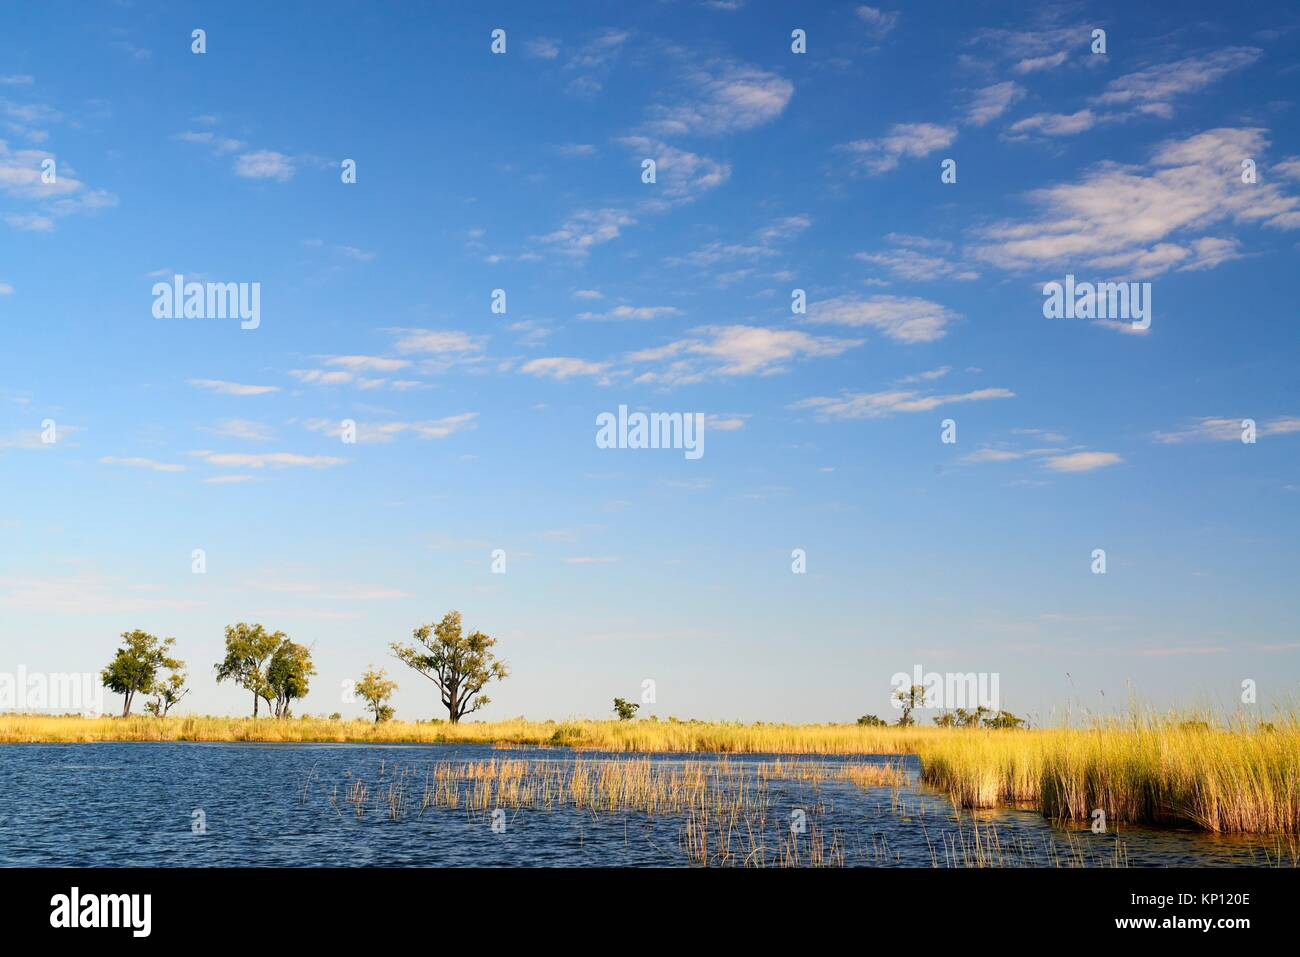 Landscape with water channel and high grass, Moremi National Park, Okavango Delta, Botswana, Southern Africa. - Stock Image